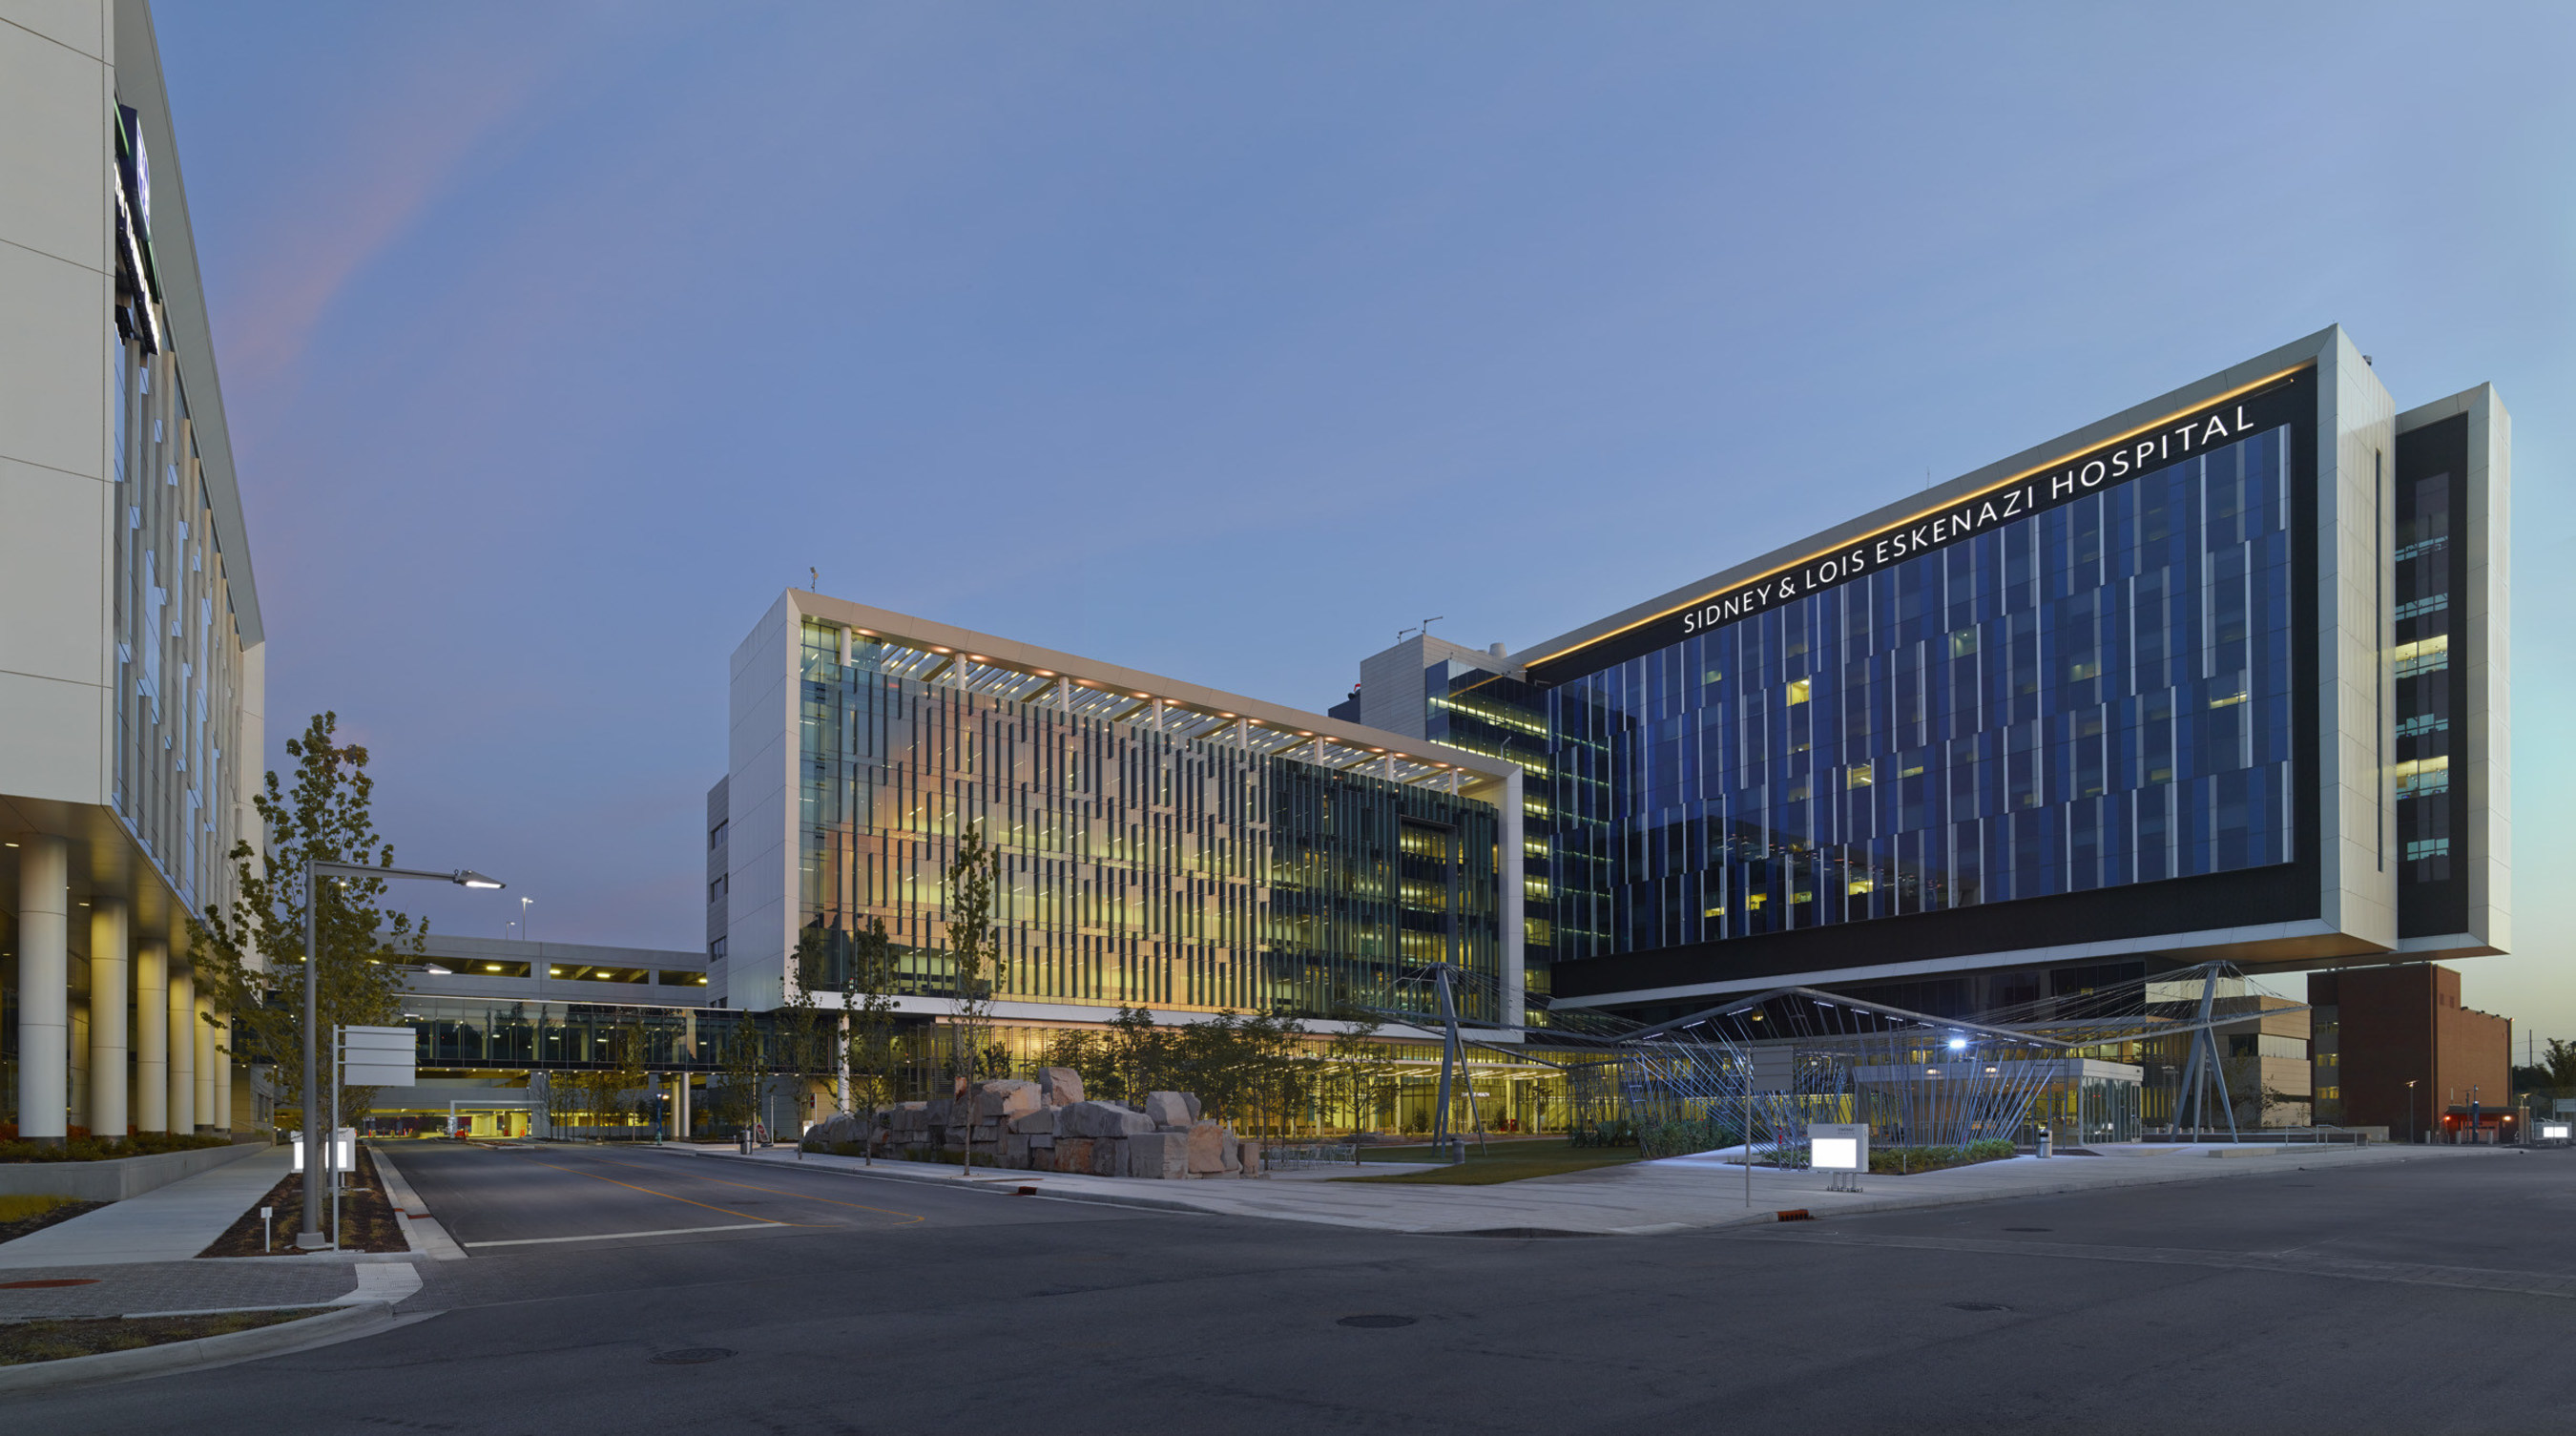 The Sidney & Lois Eskenazi Hospital in Indianapolis features integrated clinical, building and administrative systems to improve clinical care for more than 19,000 inpatients and hundreds of thousands of outpatients each year. Doctors and nurses spend more time with patients at the hospital, thanks in part to technology integration from Johnson Controls, a global multi-industrial company.